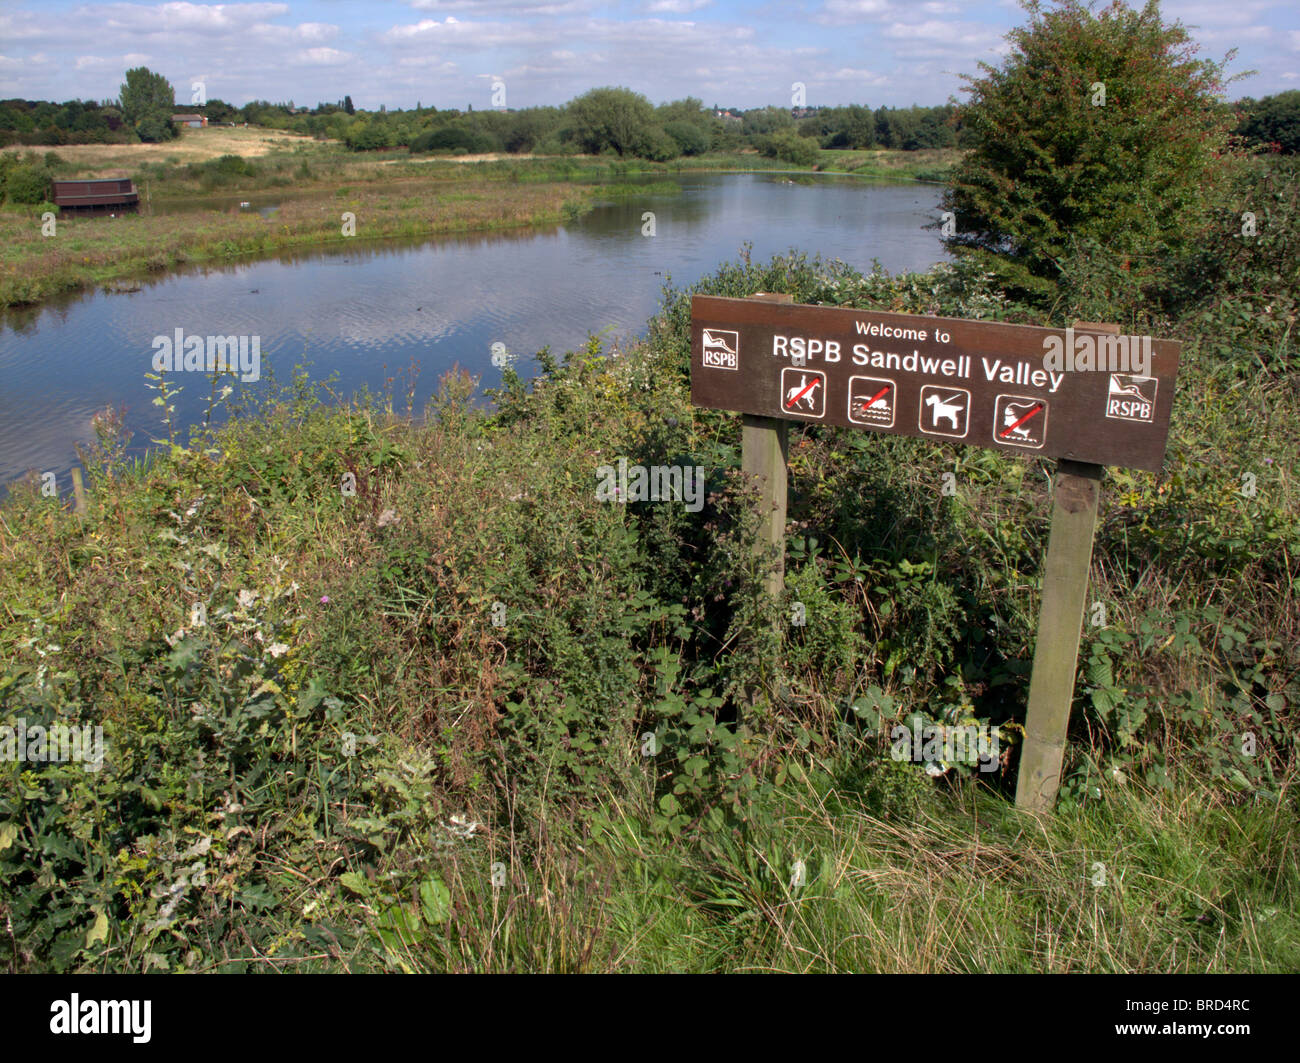 Sandwell Valley RSPB reserve, Midlands, September 2010 - Stock Image